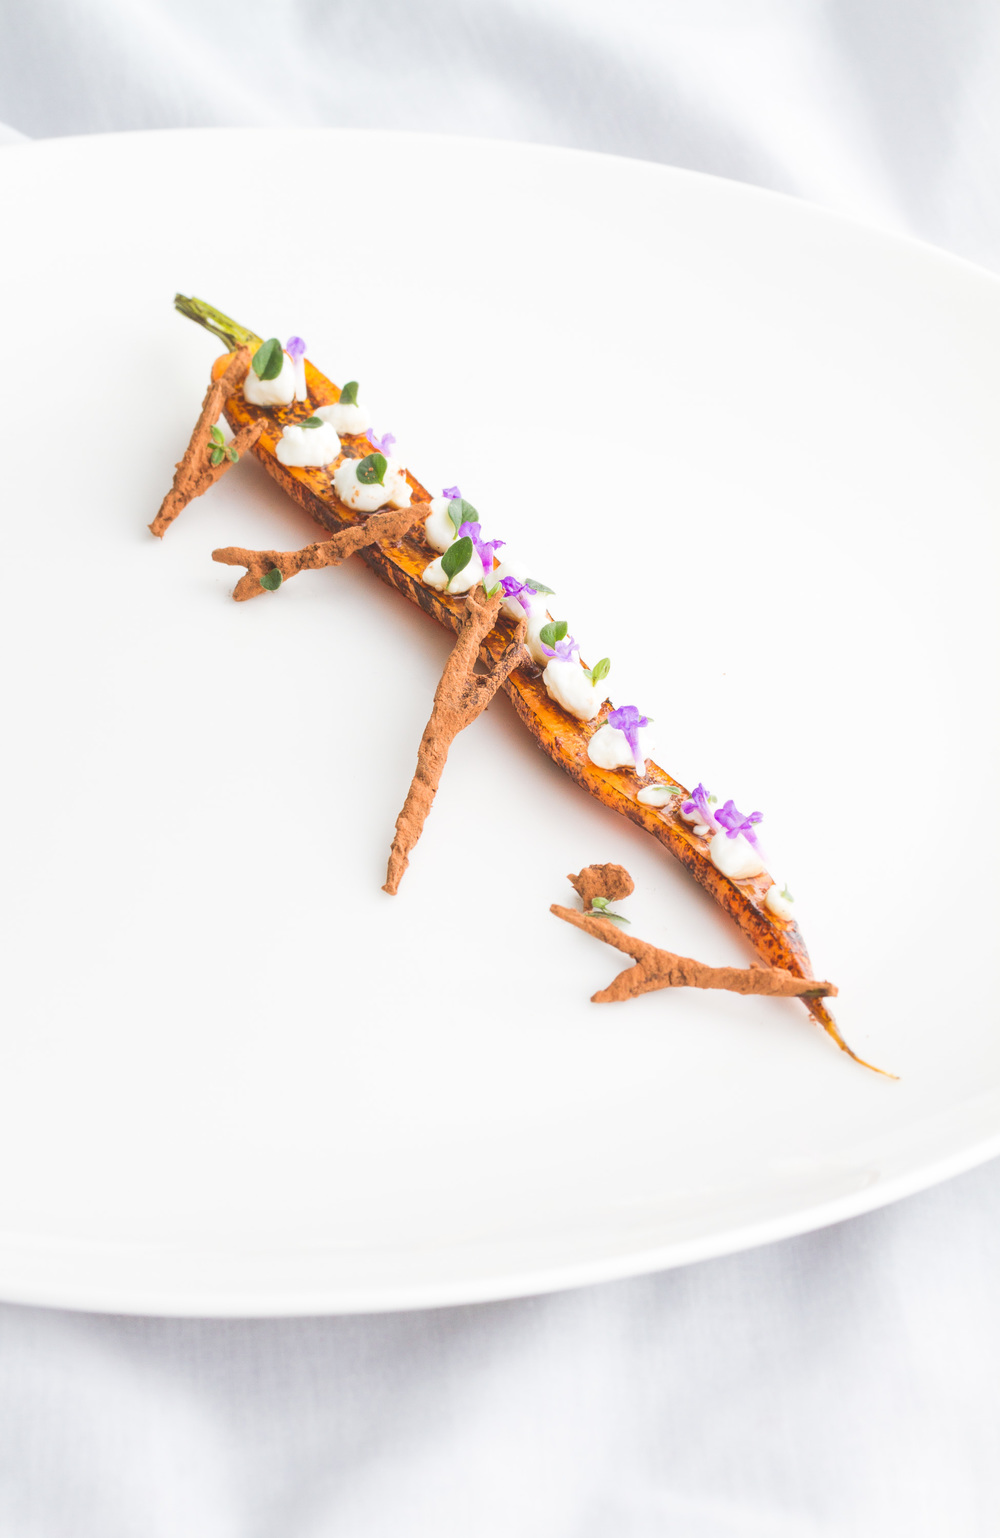 Honey glazed carrot, cottage cheese and chervil twigs